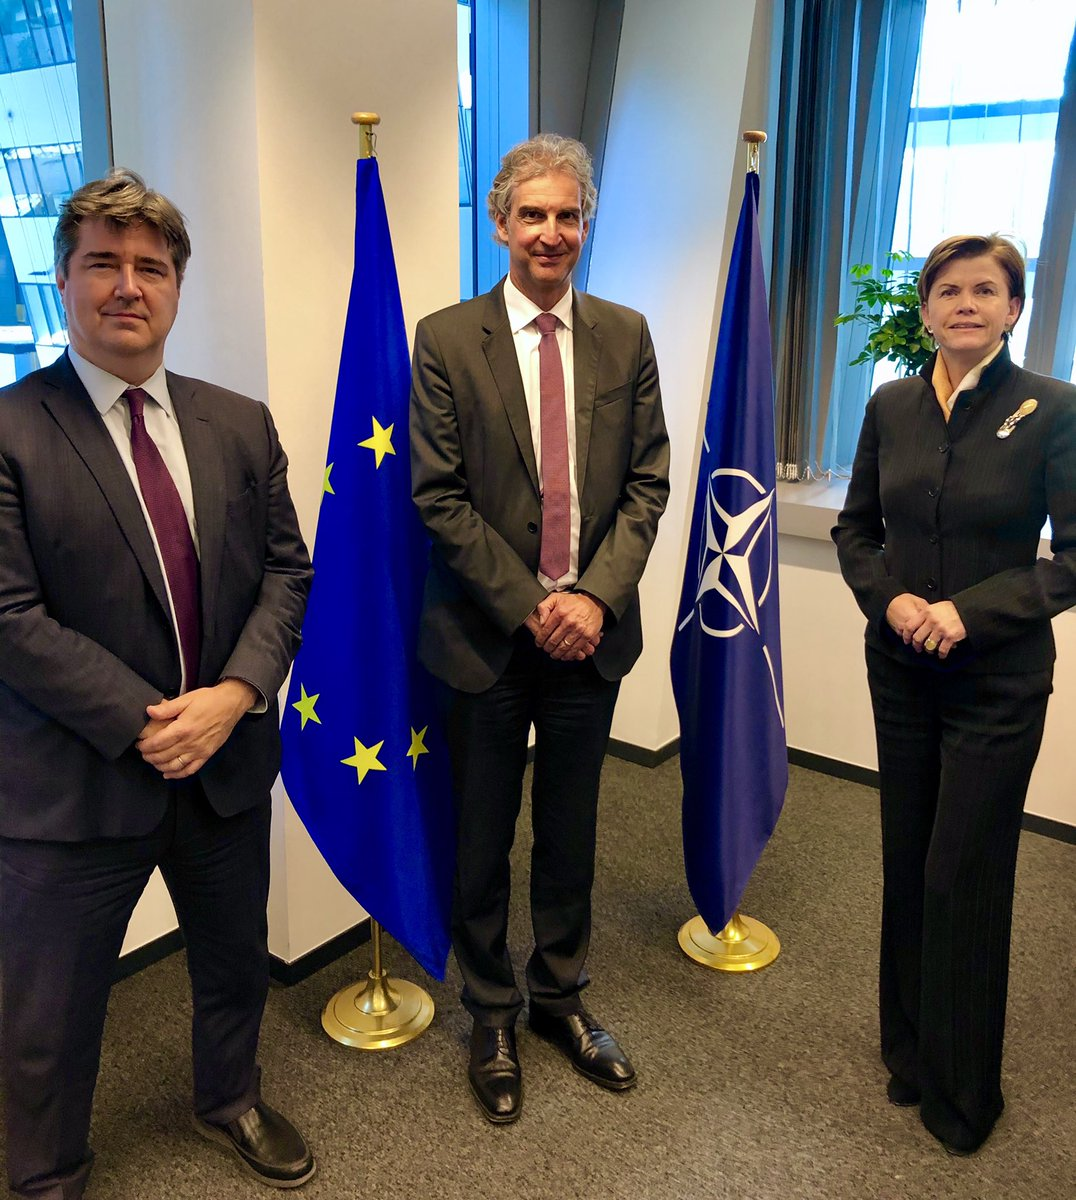 Close NATO-EU cooperation enhanced by an in-person meeting with our EU @eu_eeas and @EU_Commission colleagues Oliver Rentschler and Diego De Ojeda at #NATO HQ and our joint briefing to the DPRC. 🇪🇺  Common action for values, truth, facts, resilience. #StrongerTogether https://t.co/HAMRPdoCG8